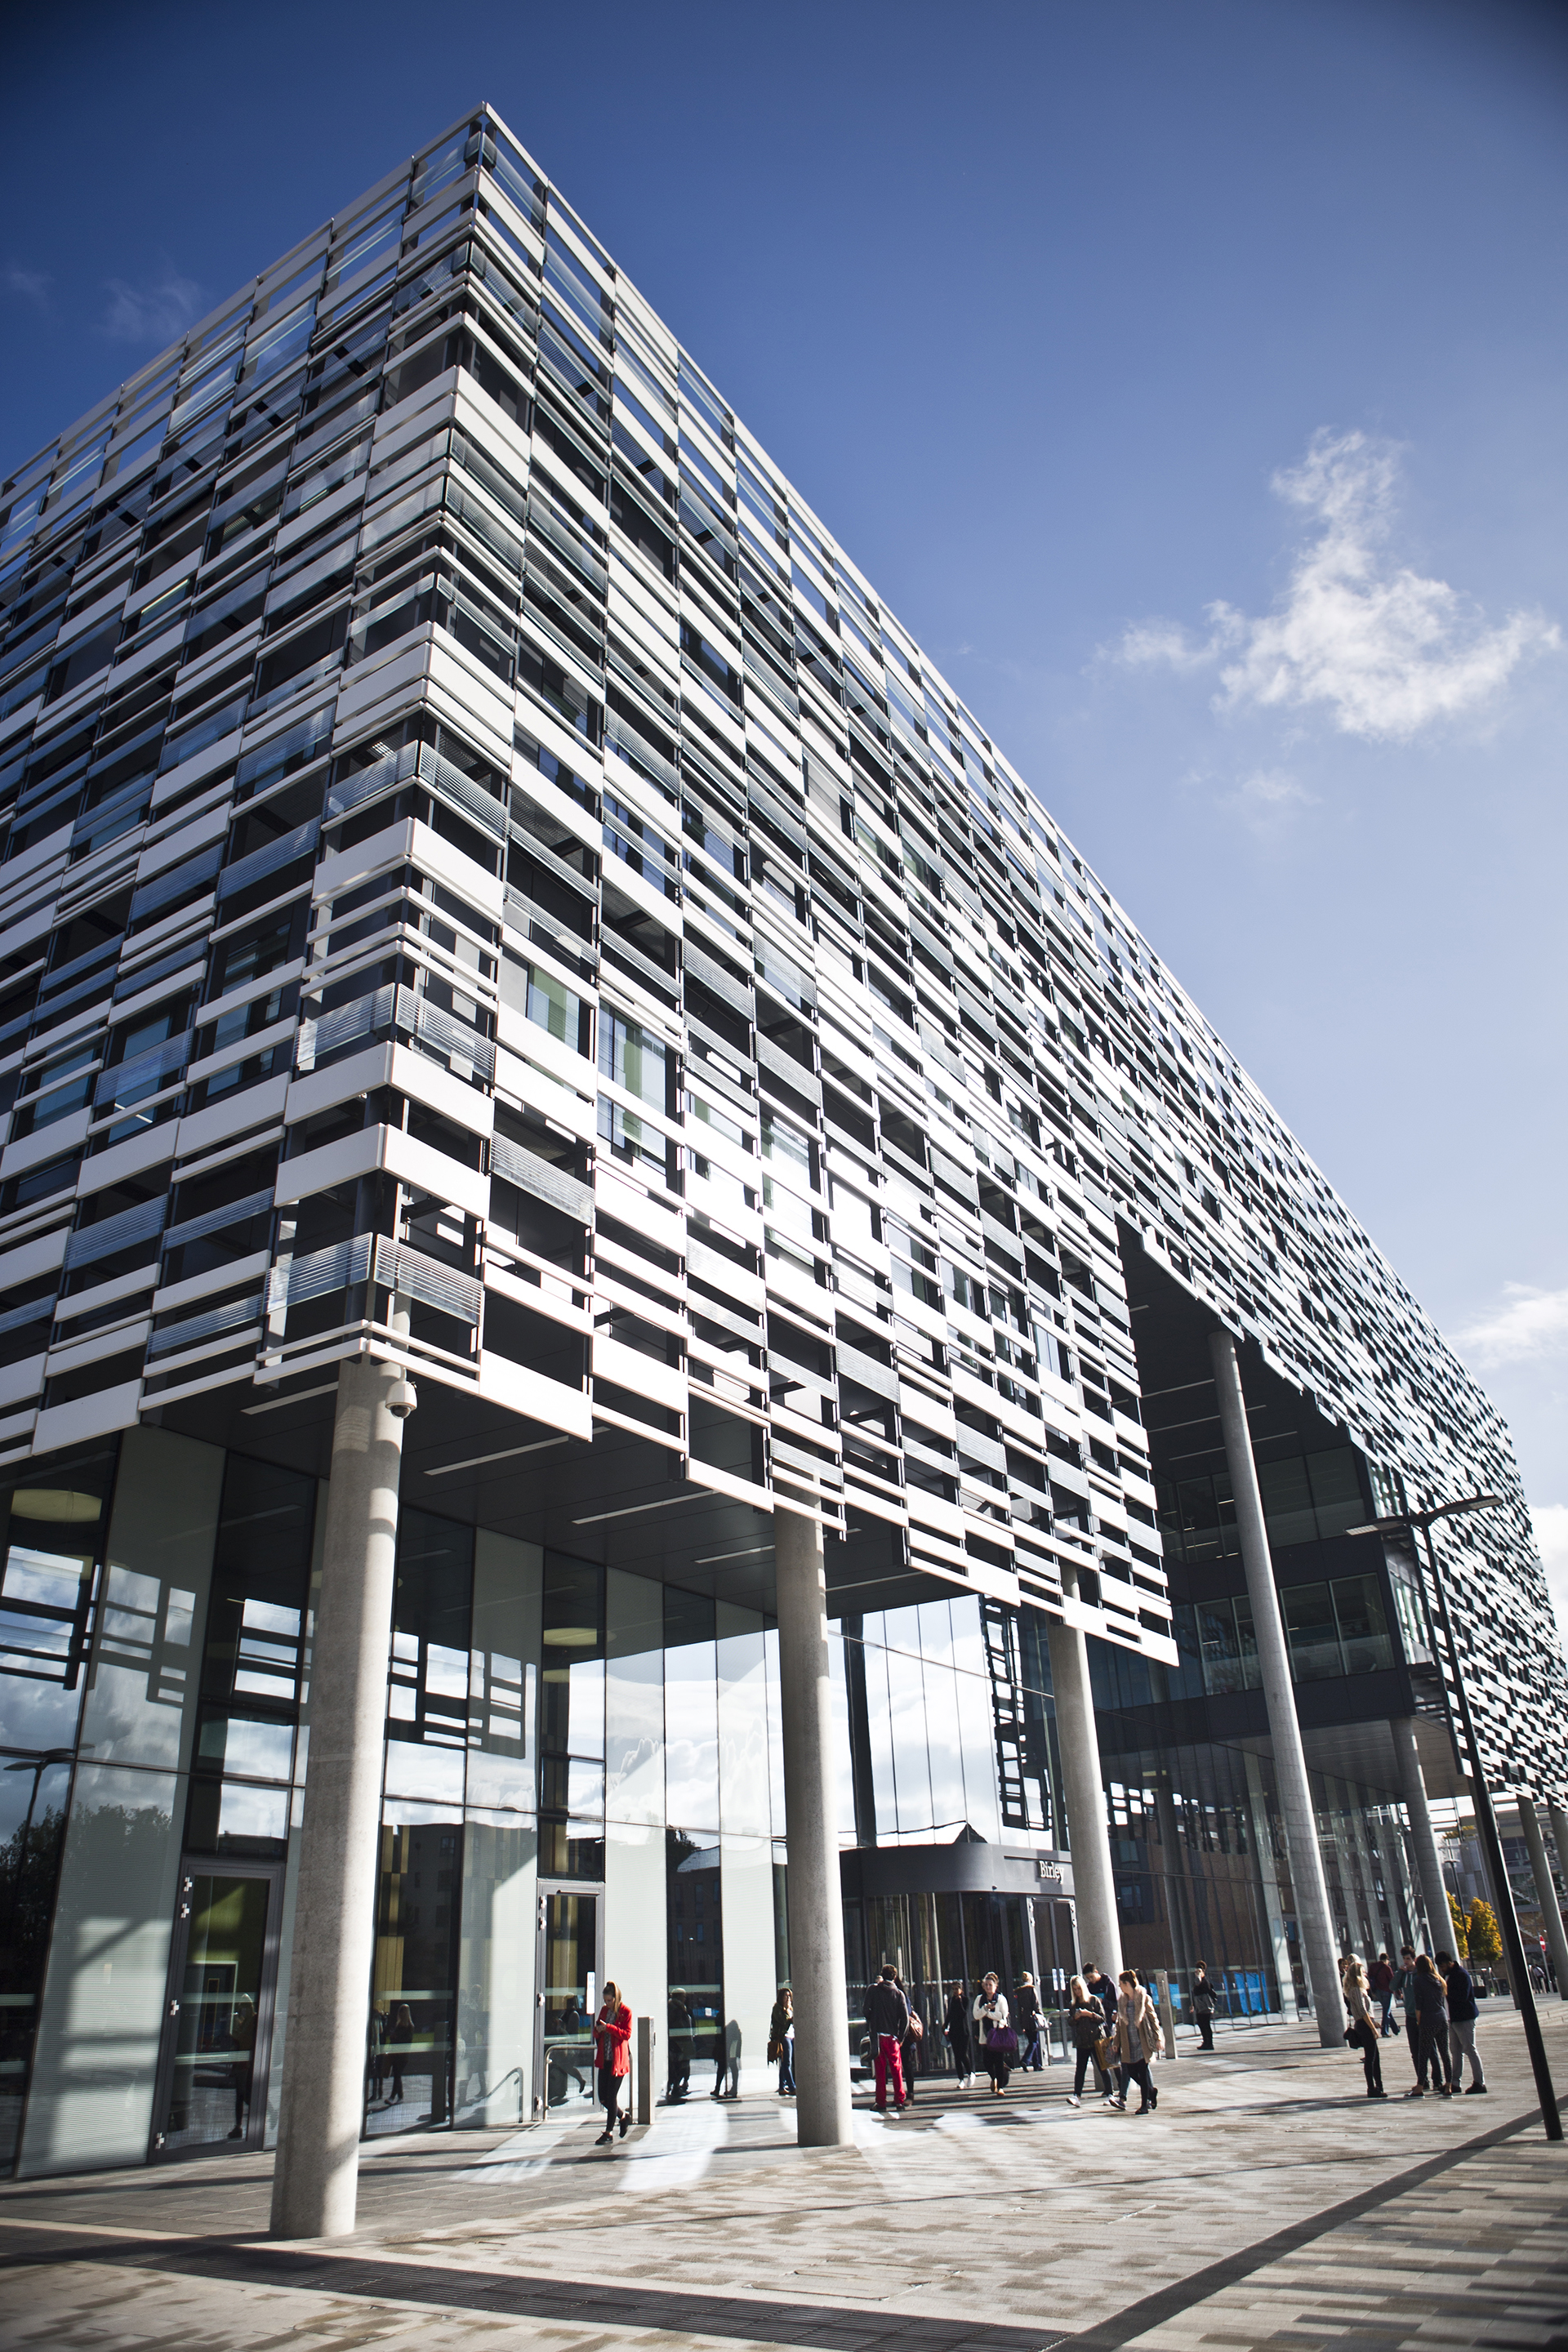 Exterior view of the Birley Building in Manchester